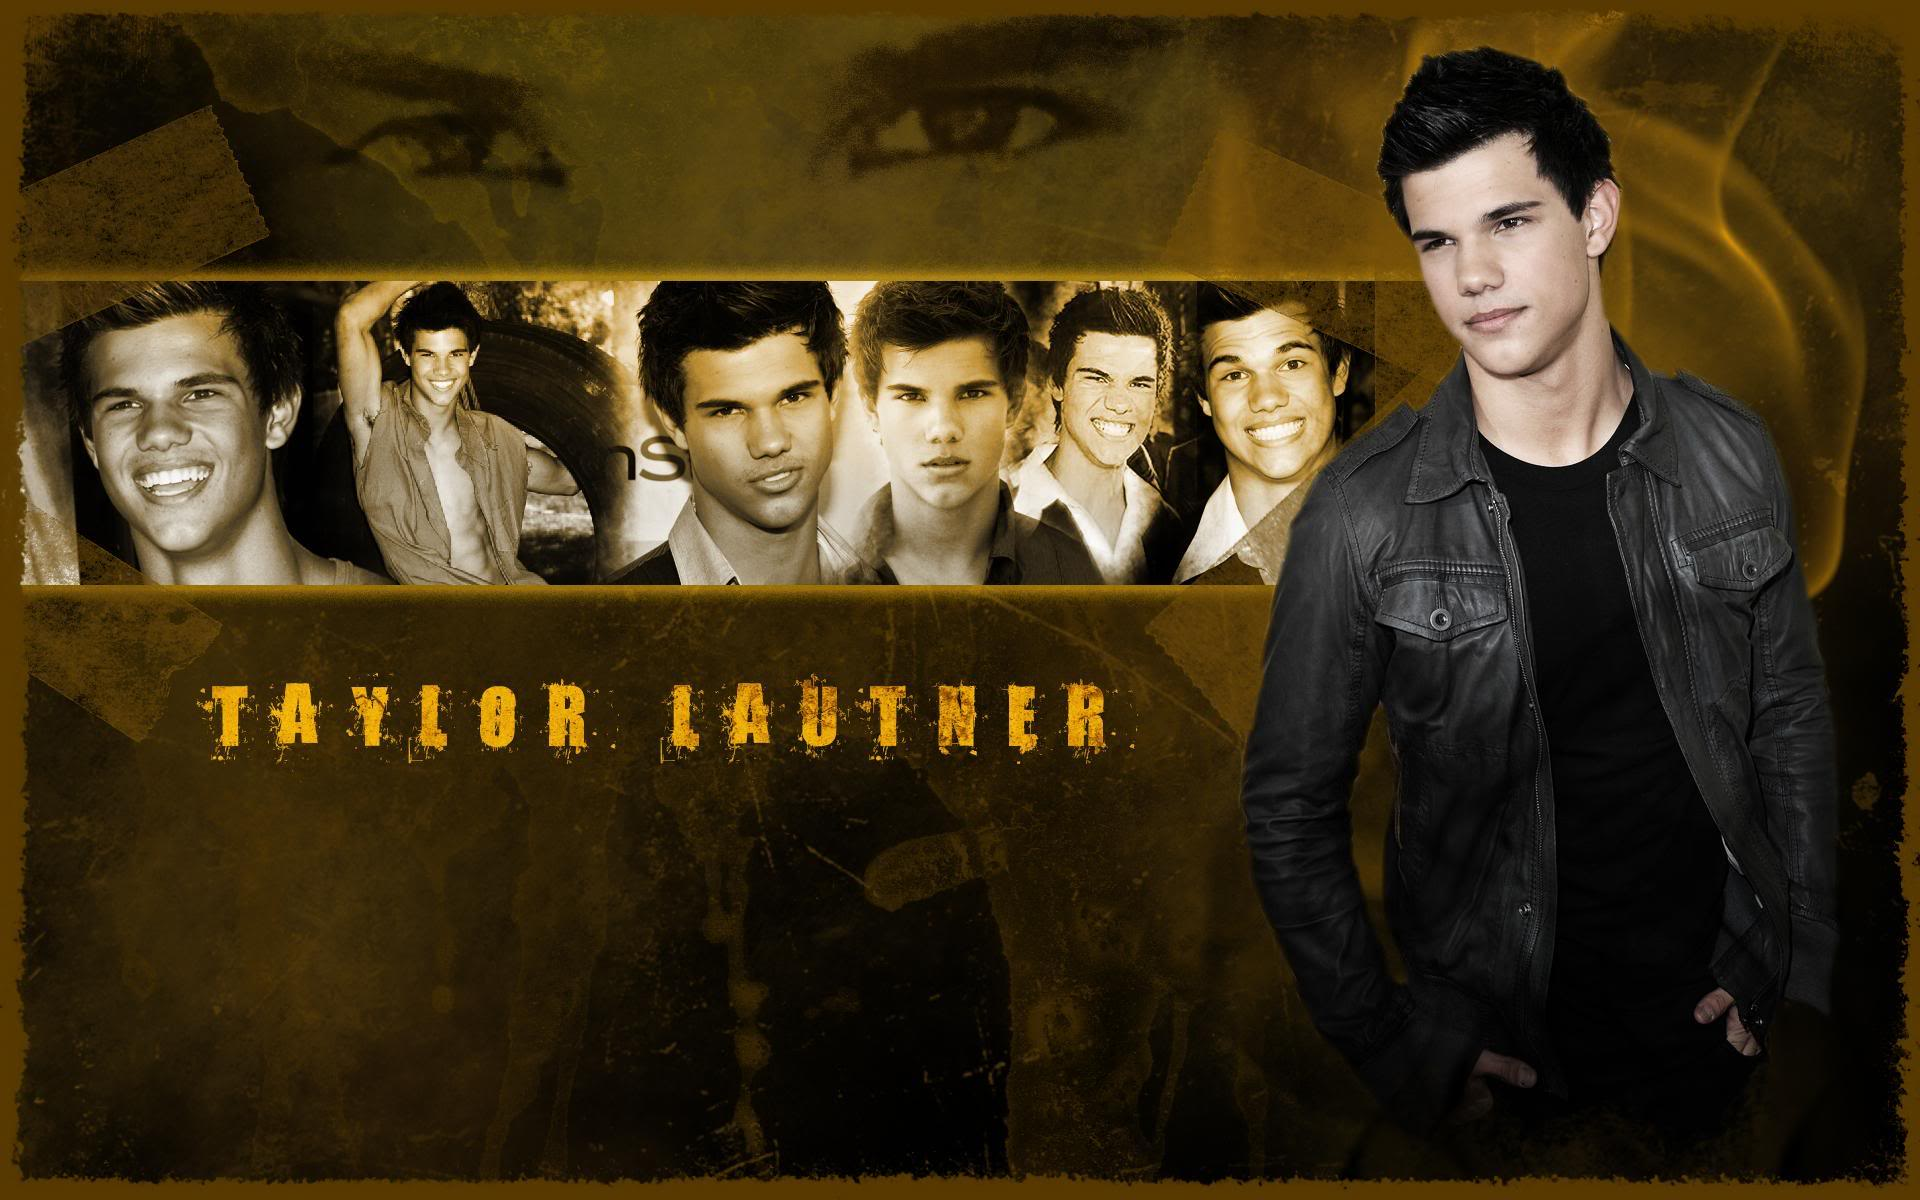 Taylor Lautner Desktop Wallpaper  Free Wallpapers and Pics HD 1920x1200